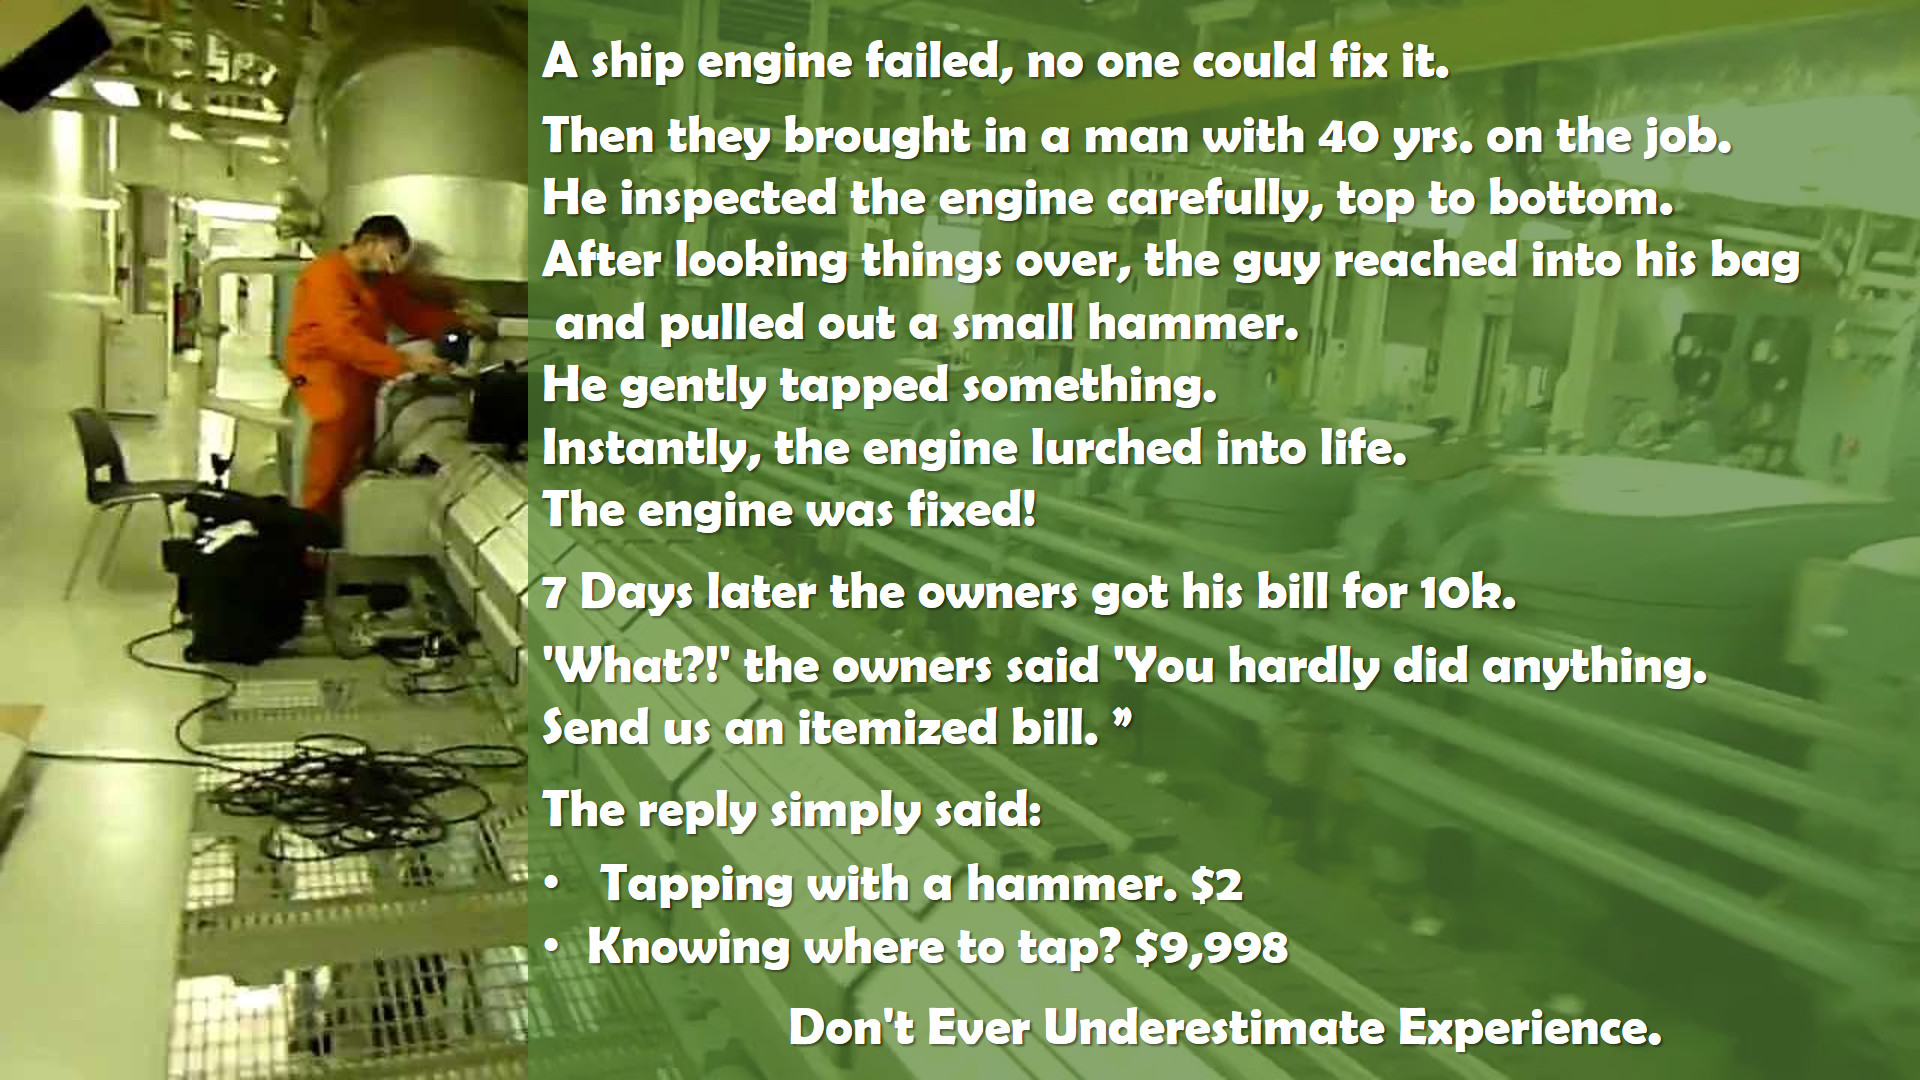 A ship engine failed, no one could fix it. Then they brought in a man with 40 years on the job. He inspected the engine carefully, top to bottom. After looking things over, the guy reached into his back and pulled out a small hammer. He gently tapped something. Instantly, the engine lurched to life. The engine was fixed! 7 days later the owners got his bill for 10K. 'What?!' the owners said. 'You hardly did anything. Send us an itemized bill.' The reply simply said: 1. Tapping with a hammer. $2 — 2. Knowing where to tap: $9,998. -Don't Ever Underestimate Experience.-